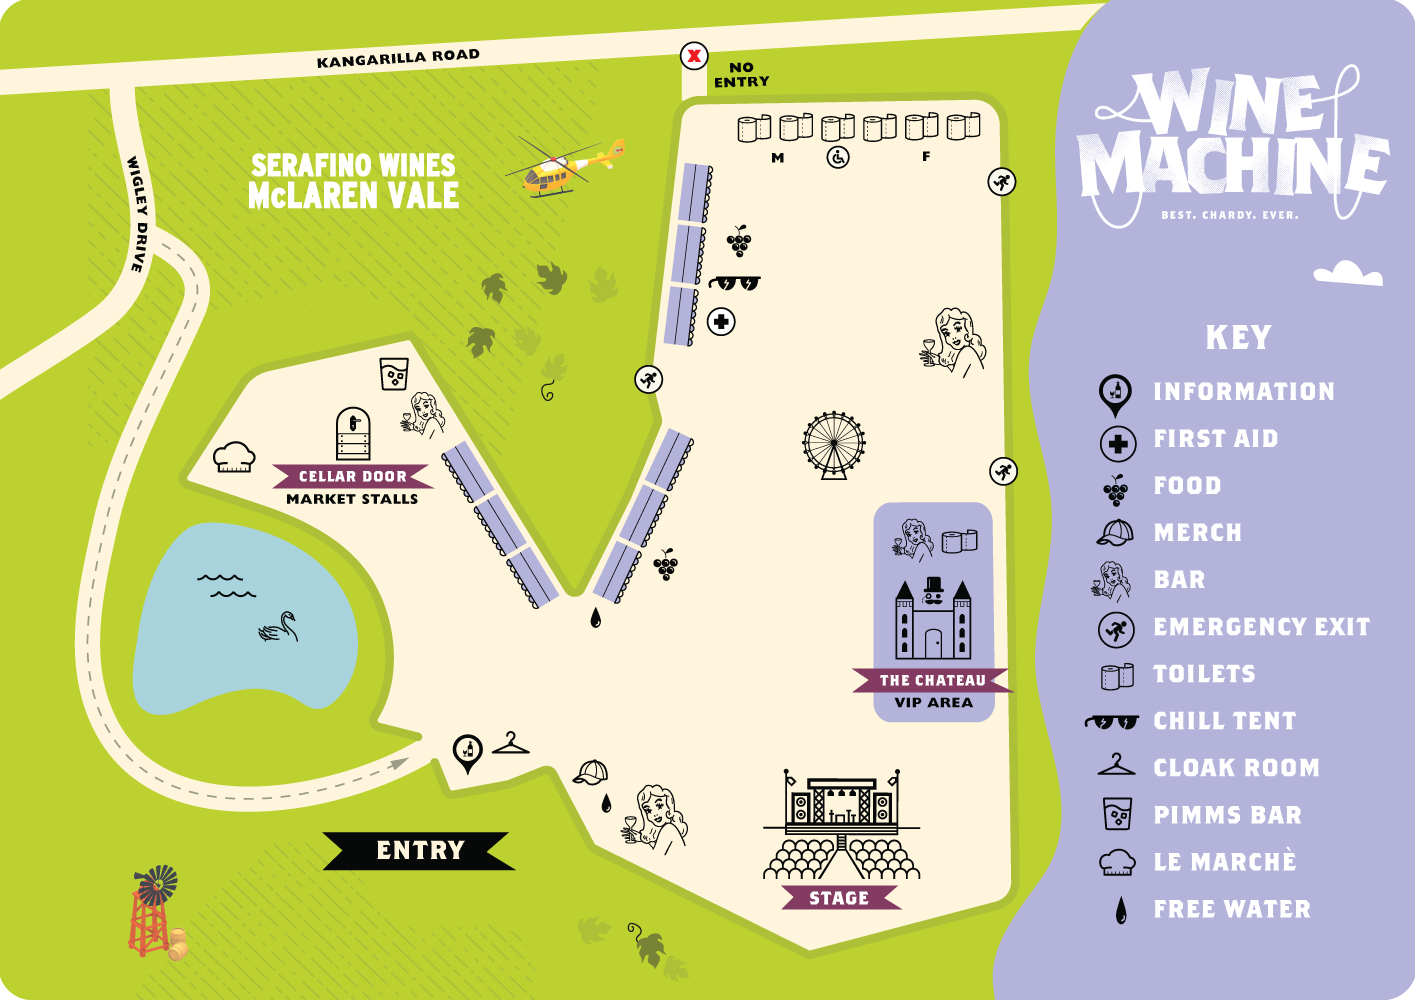 mclaren vale wine machine map